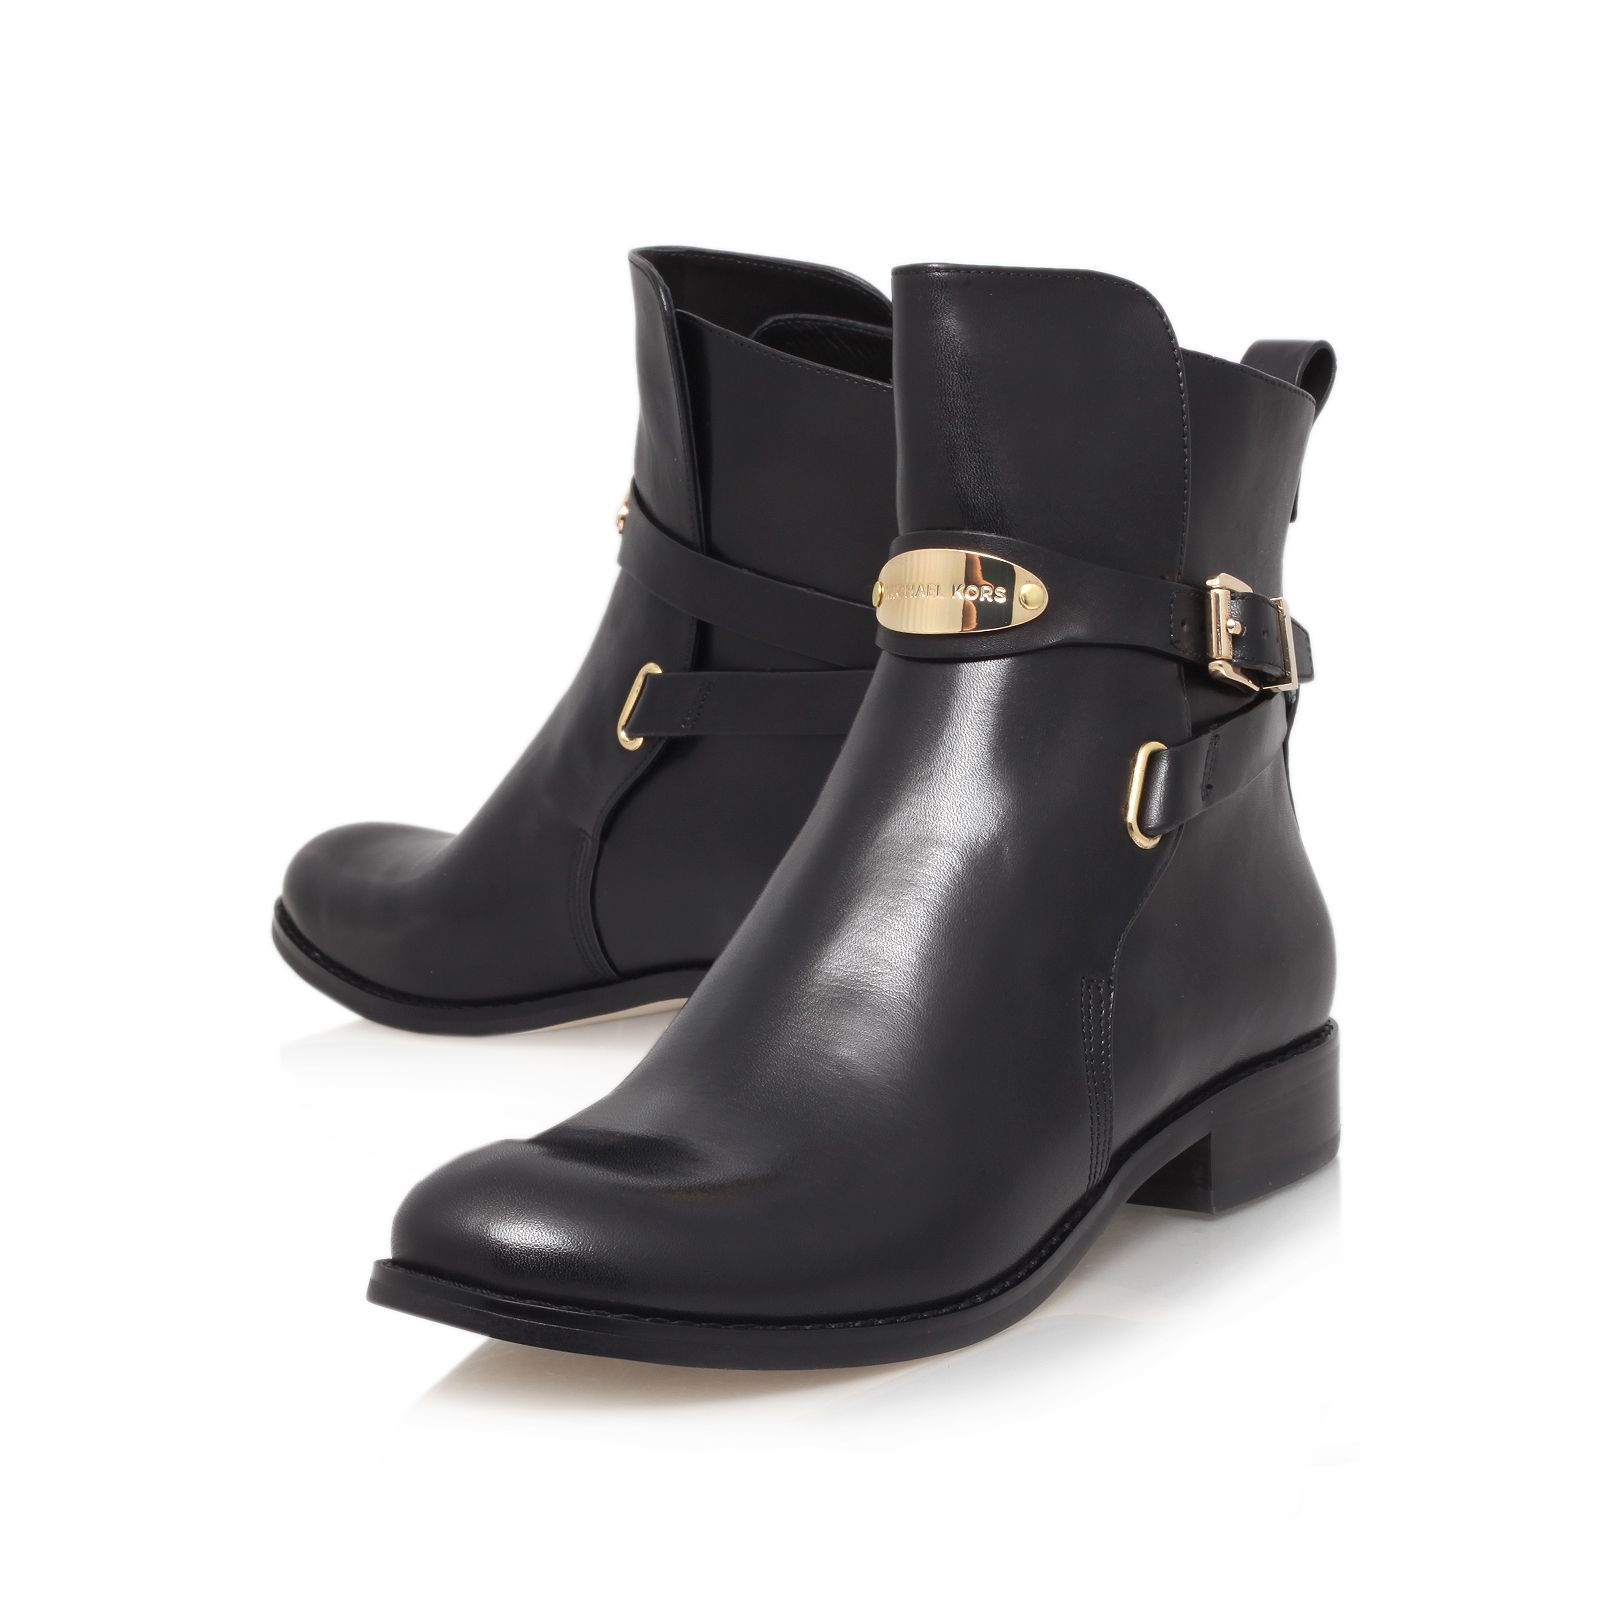 Arley leather ankle boots